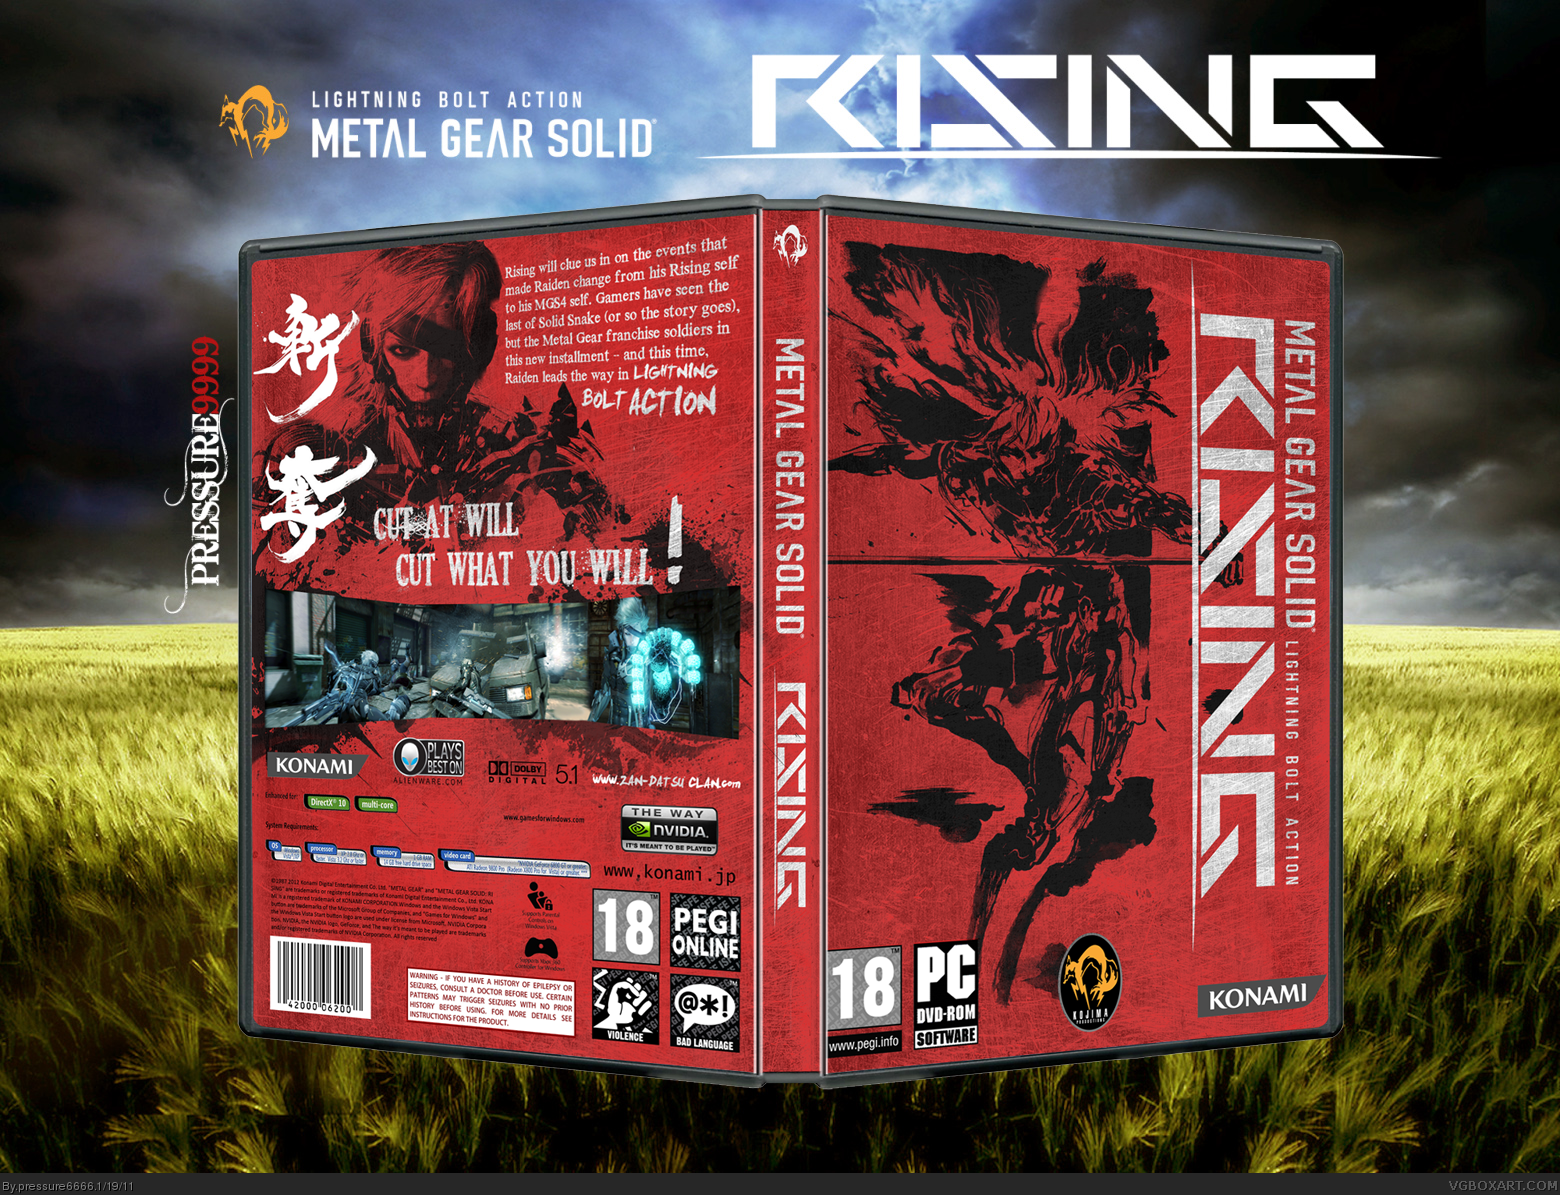 Metal Gear Solid Rising box cover